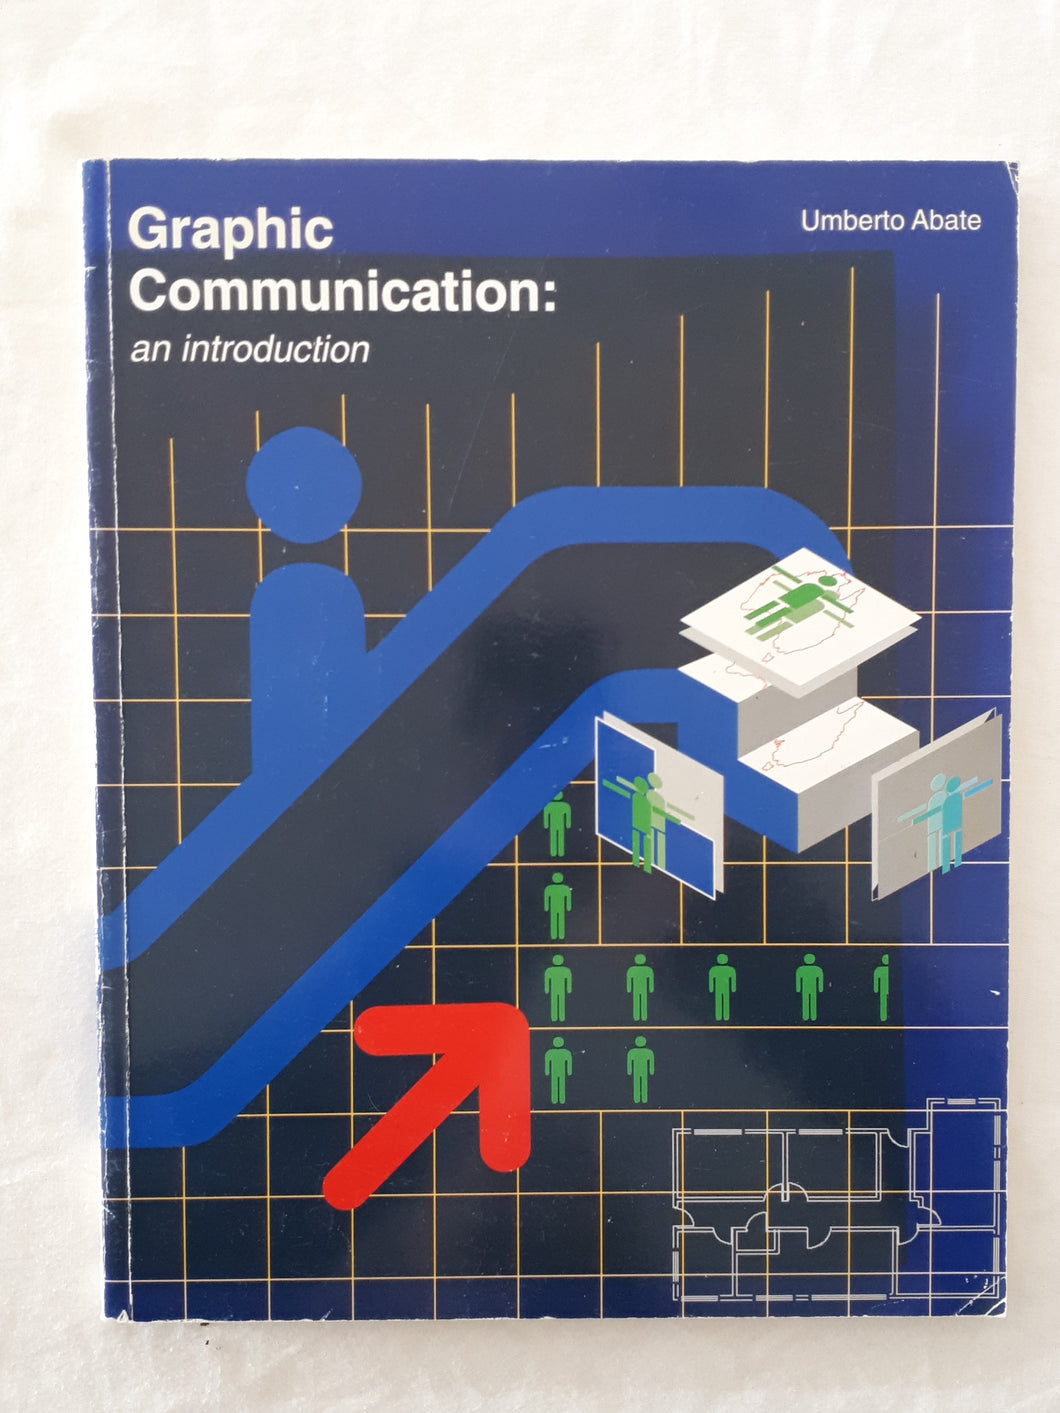 Graphic Communication: an introduction by Umberto Abate